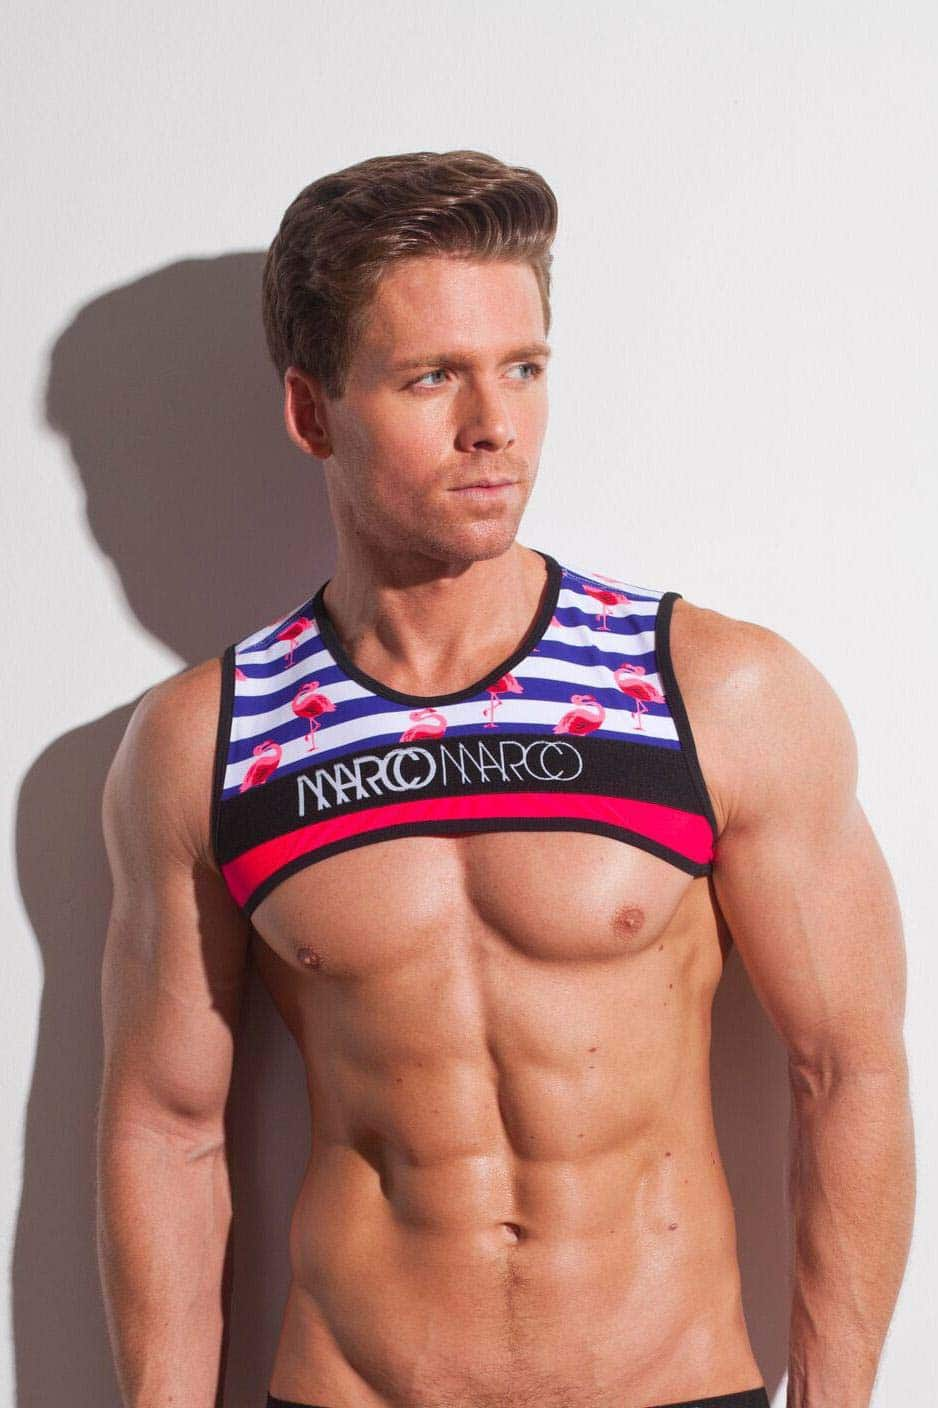 Marco Marco Nautical Harness available at www.MensUnderwear.io